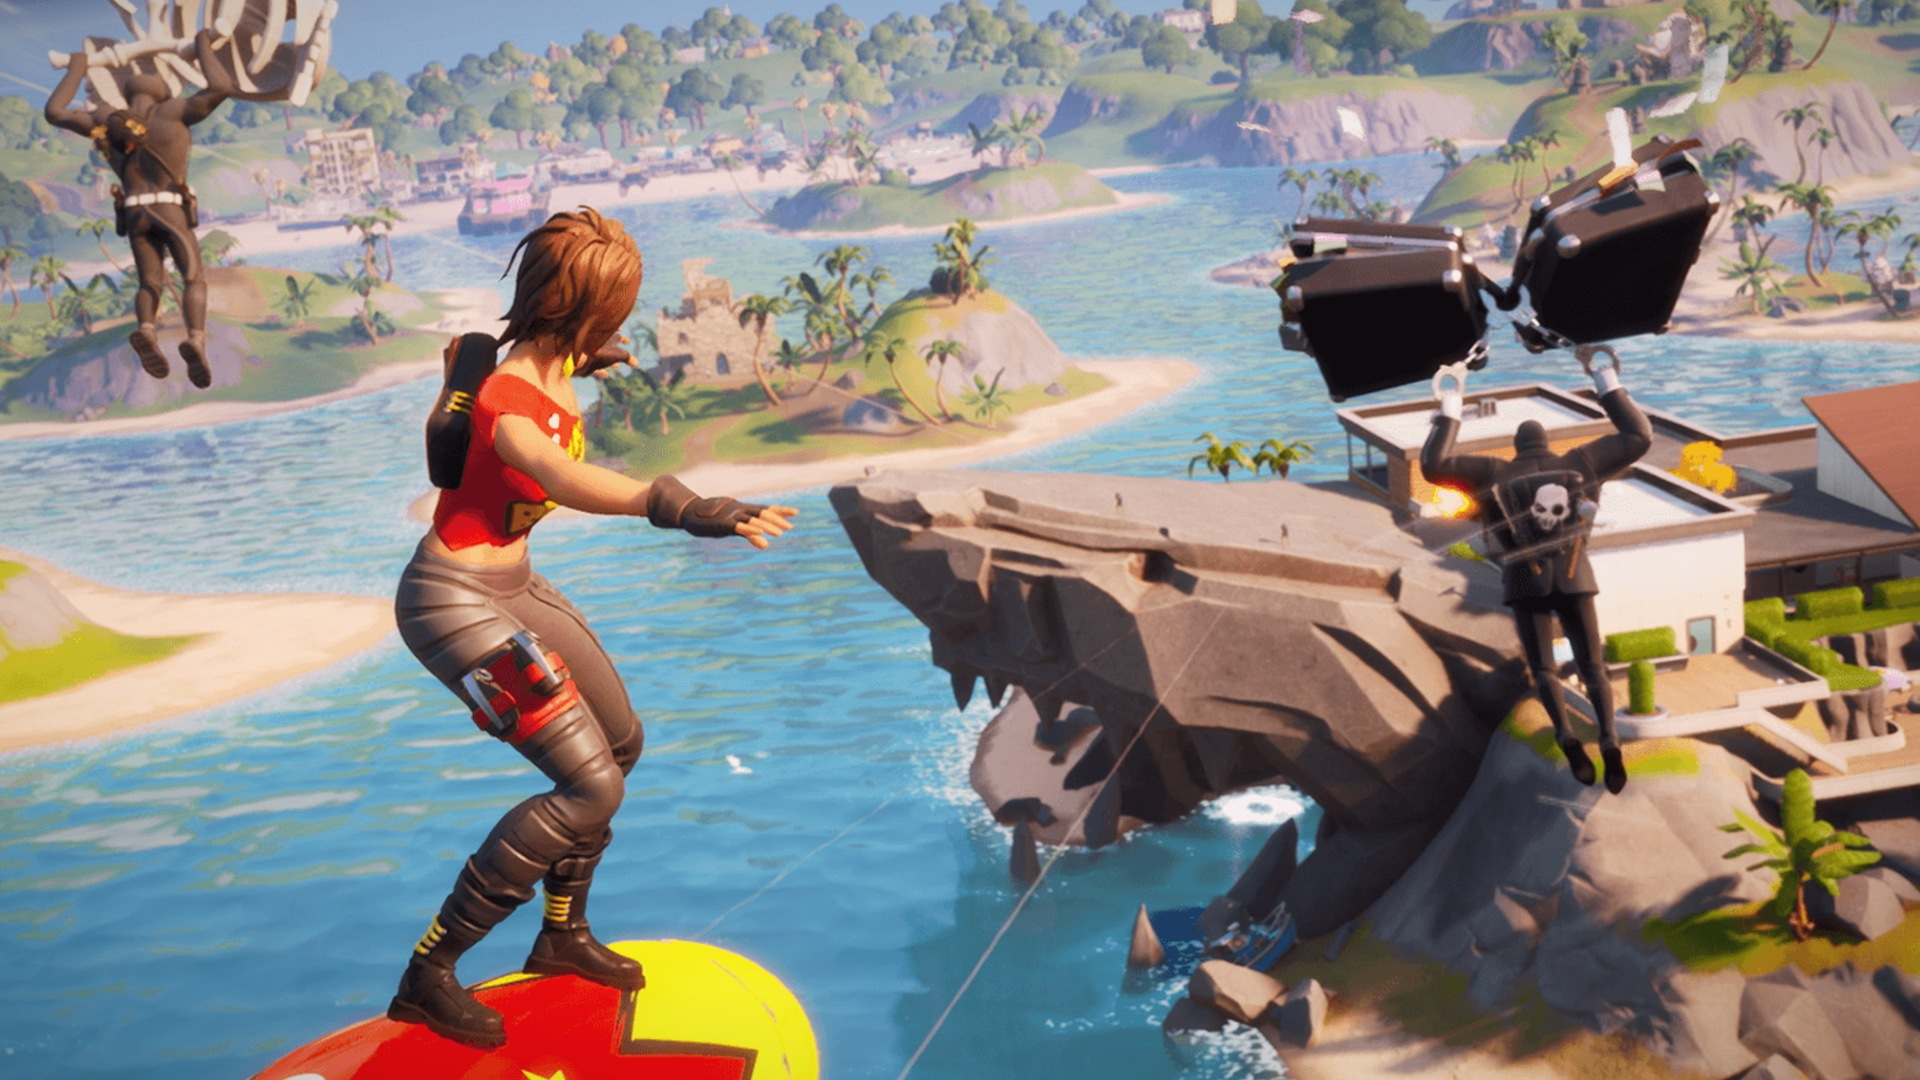 Fortnite now has 350 million registered players